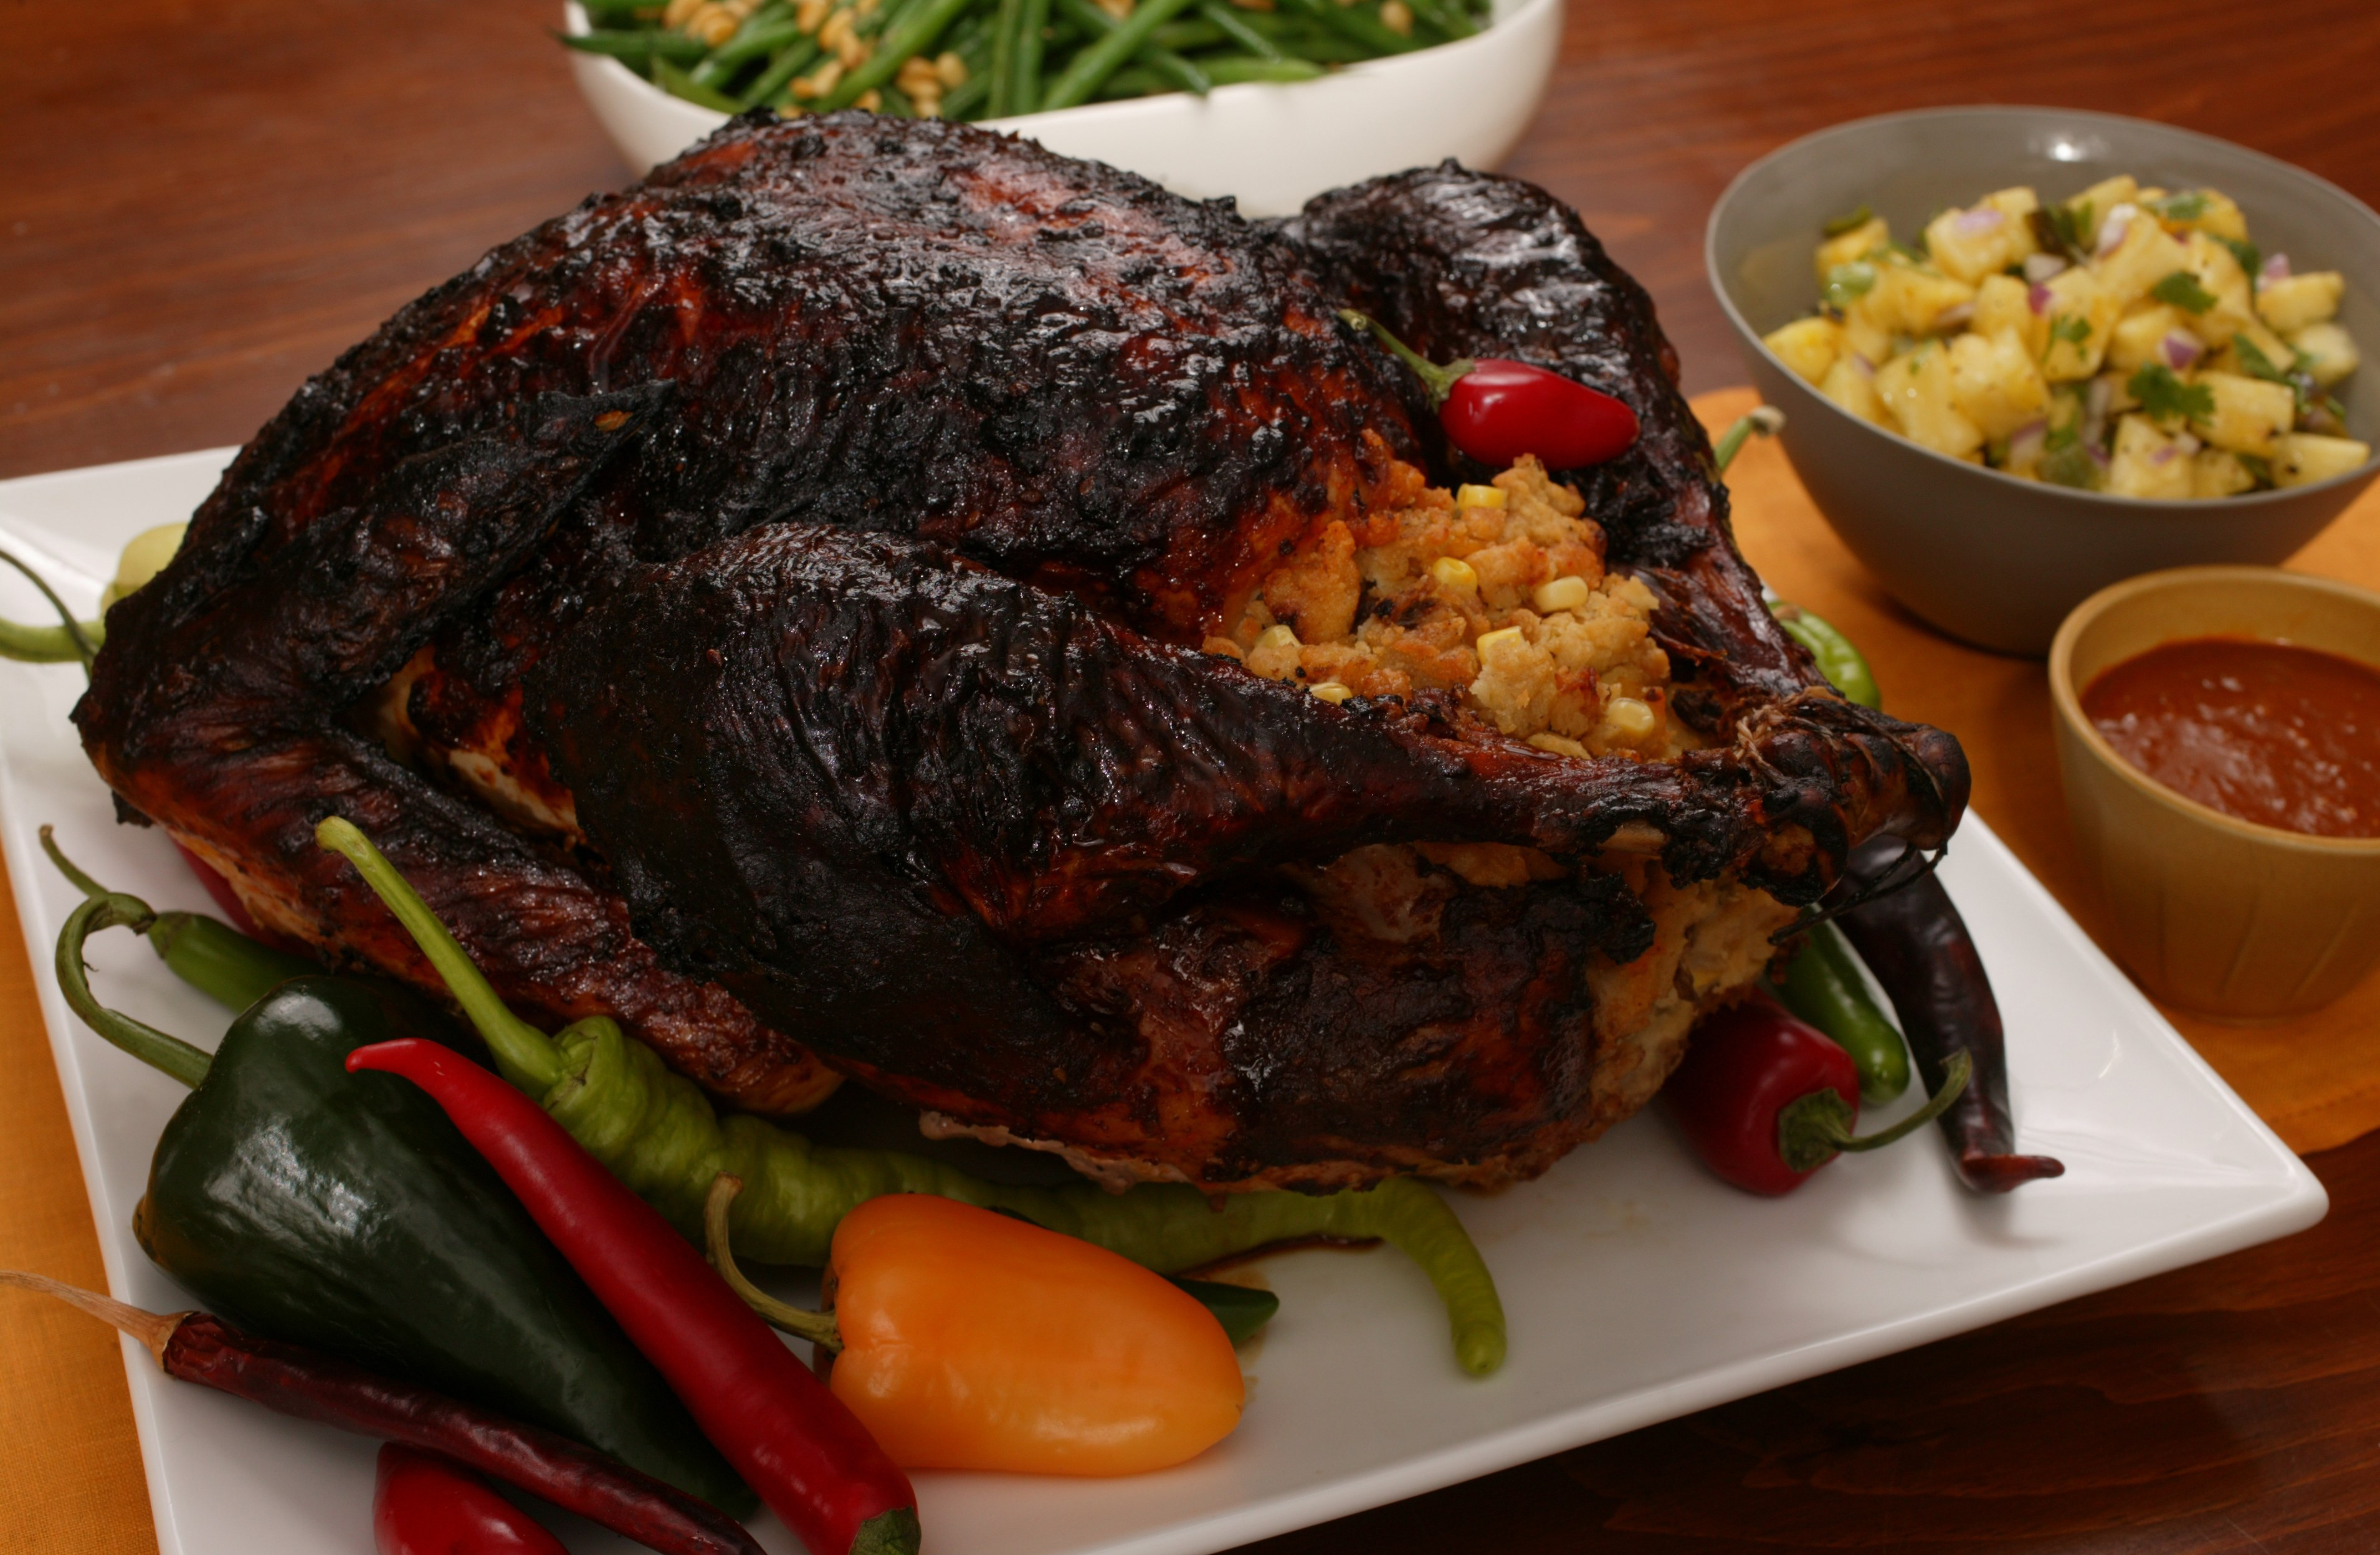 Roast Turkey Recipes Thanksgiving  Mole Roasted Turkey with Masa Stuffing and Chile Gravy